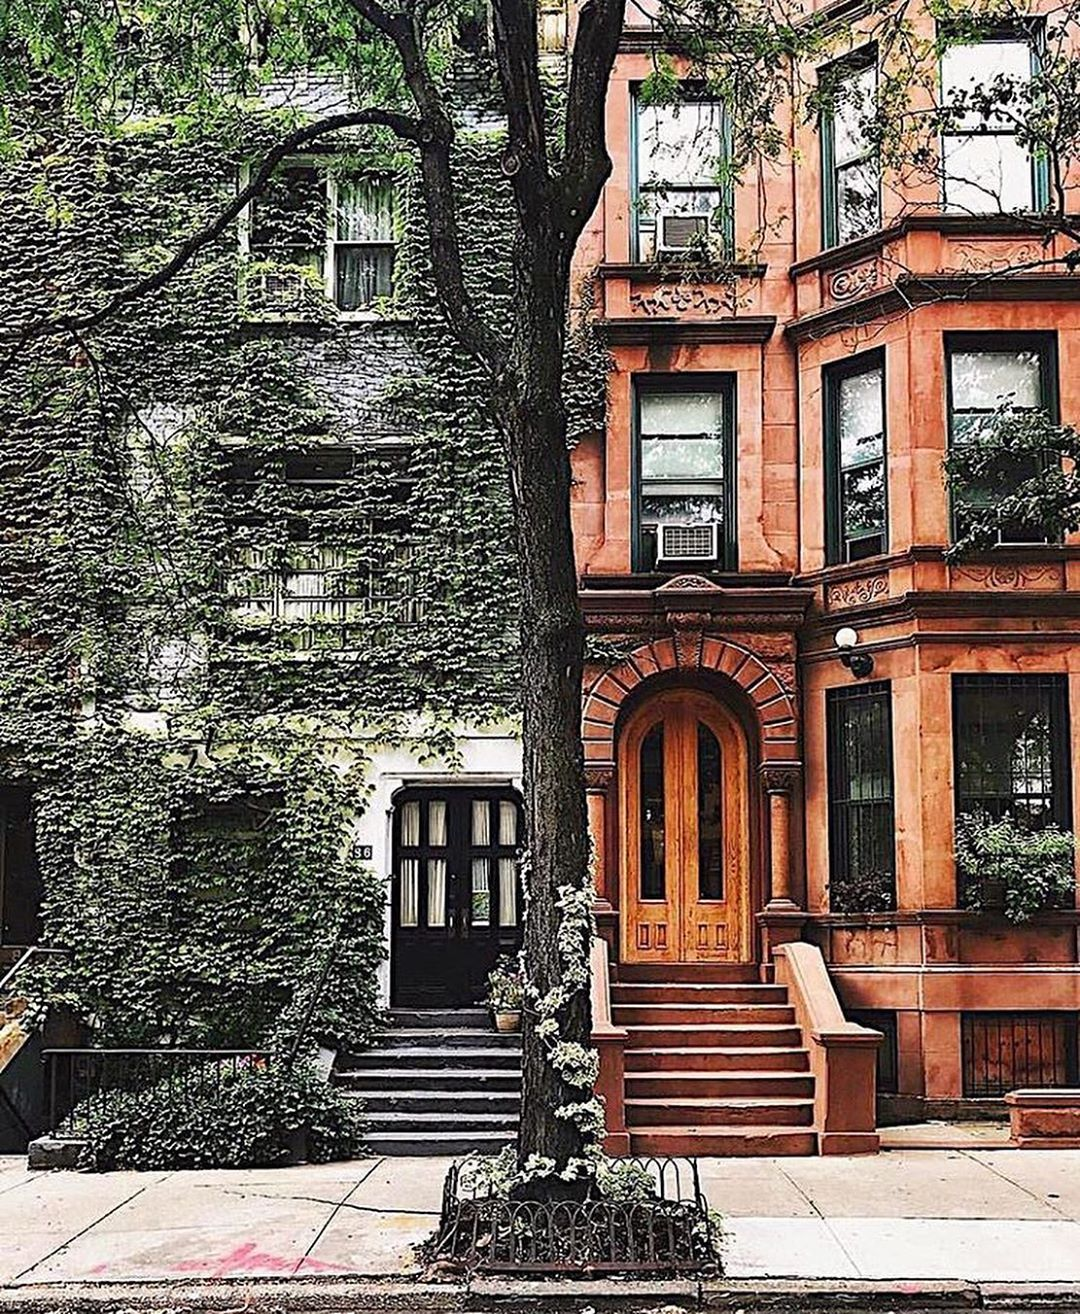 New York Apartments Outside: Brooklyn, New York : Brooklyn With Spectacular Homes In